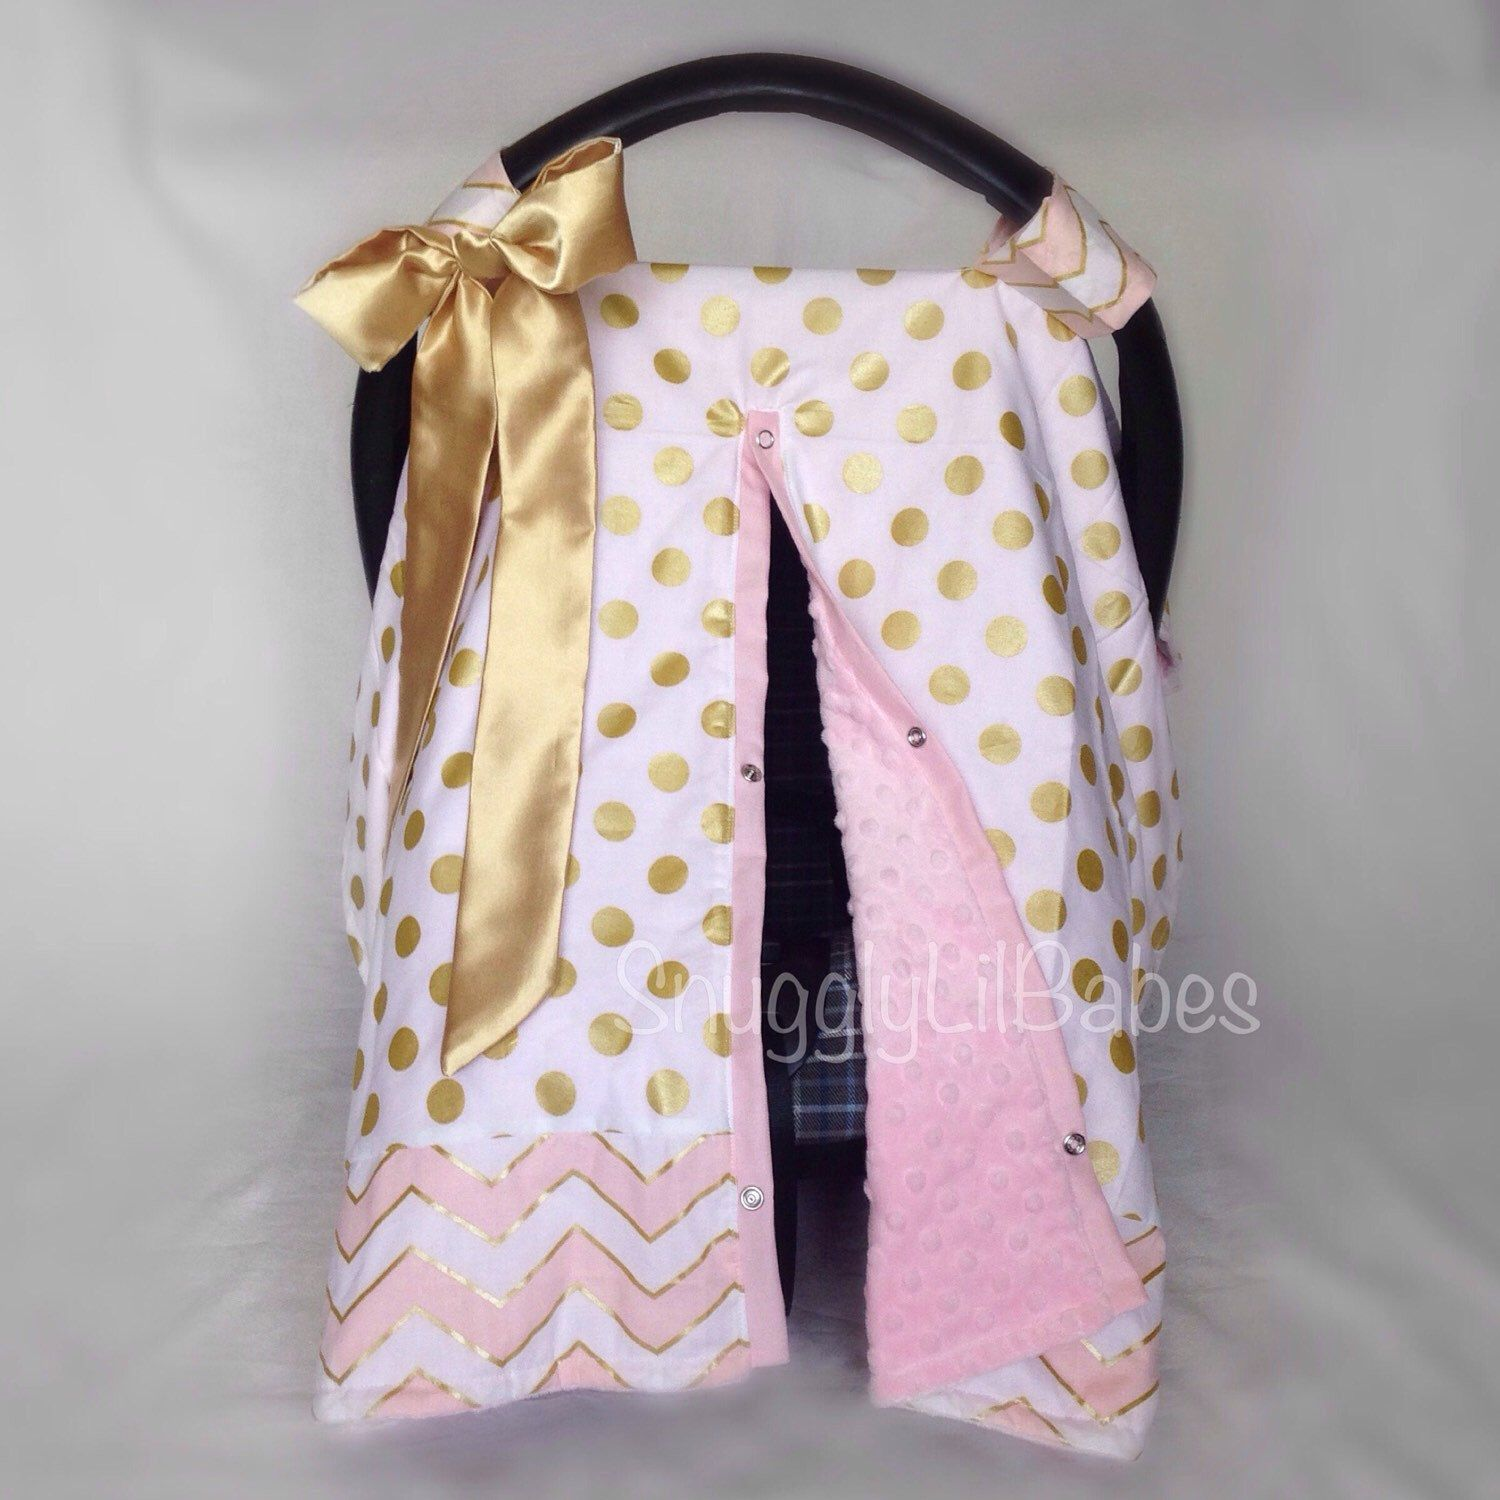 Pink gold carseat cover velcro straps with satin bow baby pink minky dot car seat canopy & Pink gold carseat cover velcro straps with satin bow baby pink ...